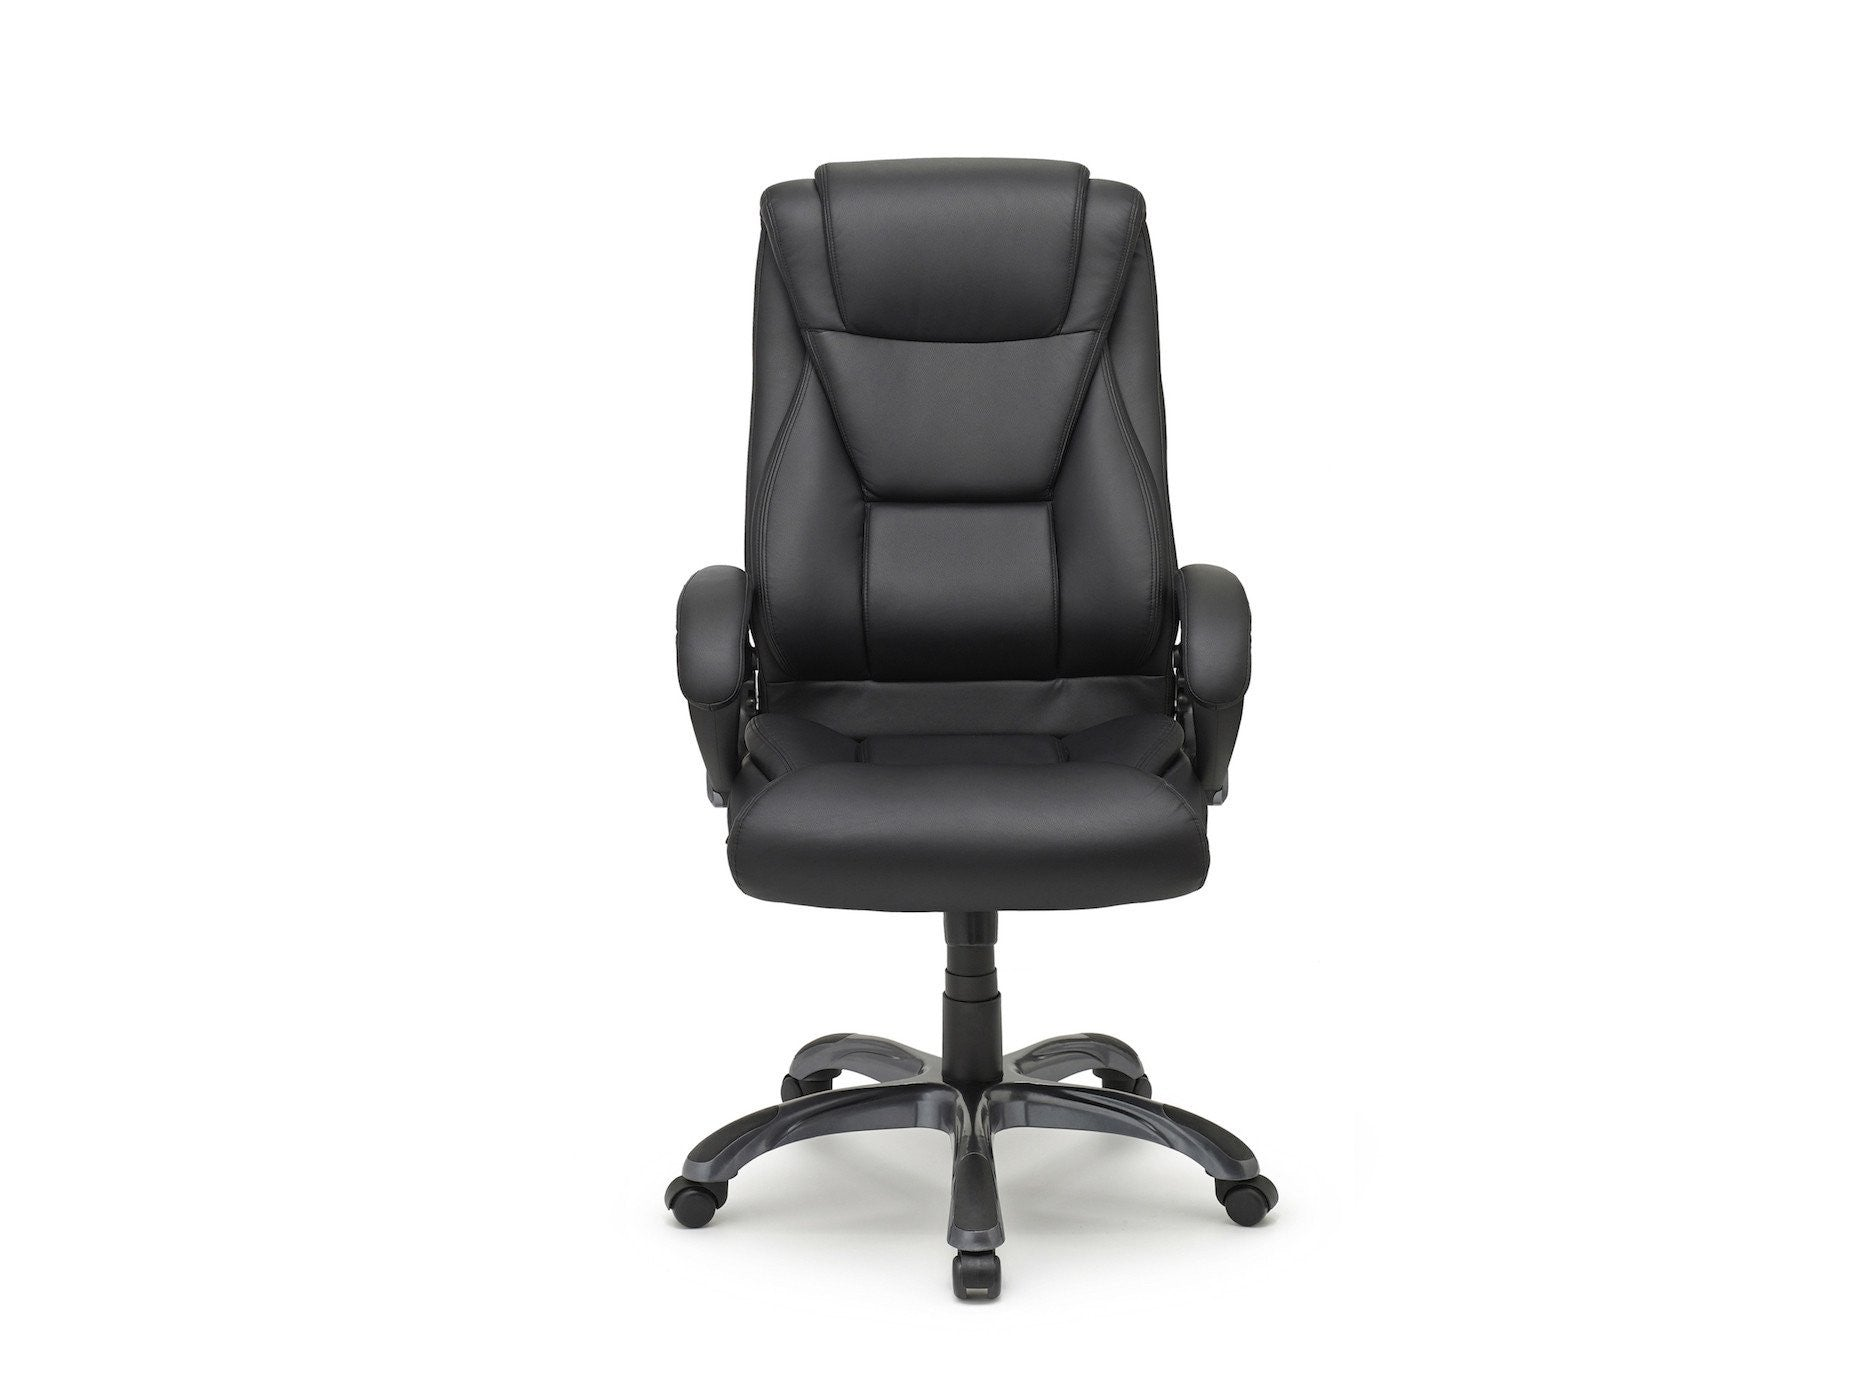 Executive Lumbar-Support Office Chair - Crossford on chair with adjustable lumbar support, chair back support products, best ergonomic chair lumbar support for office, chair cushion for office,